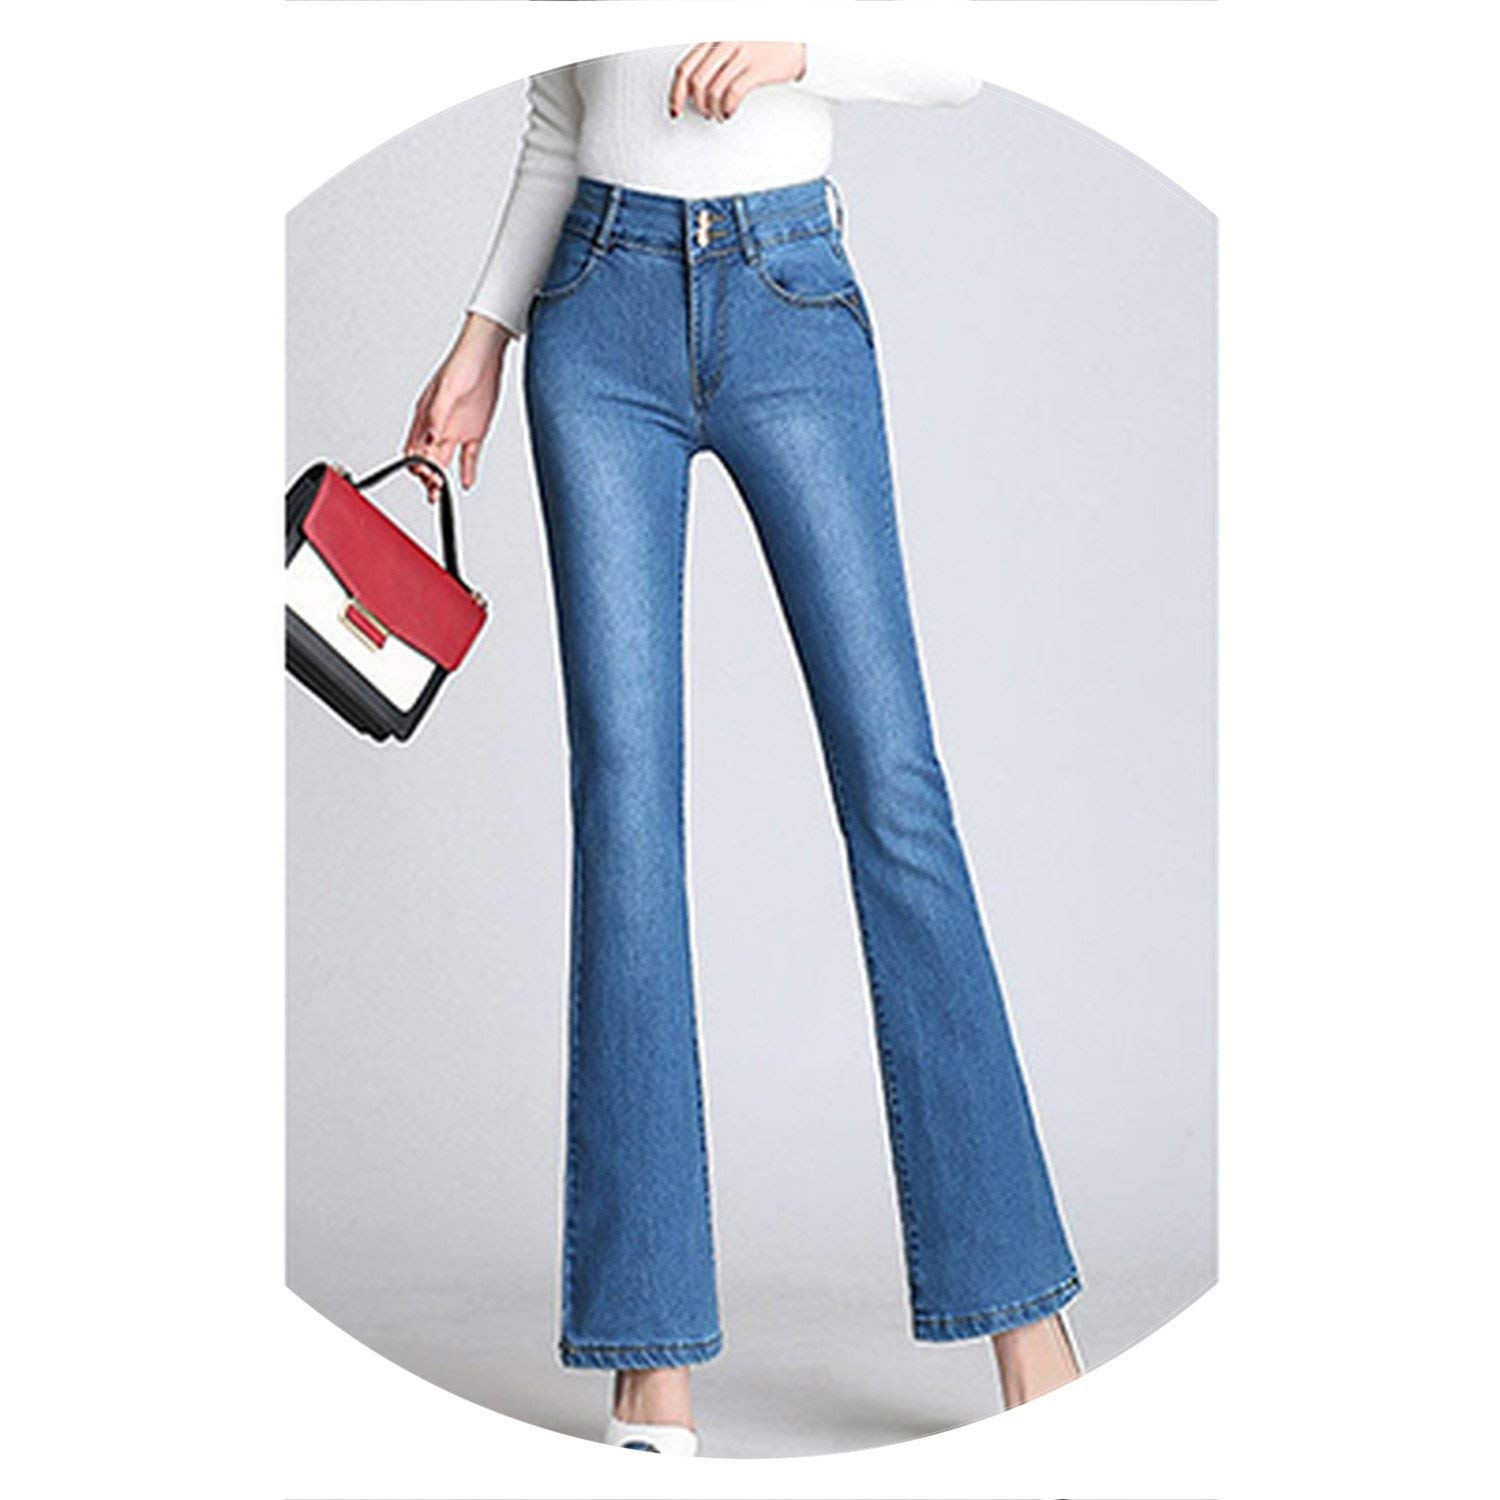 bluee colorfulspace Classic with High Waist Denim Jeans for Women Vintage Slim Mom Style Jeans Woman Denim Pants